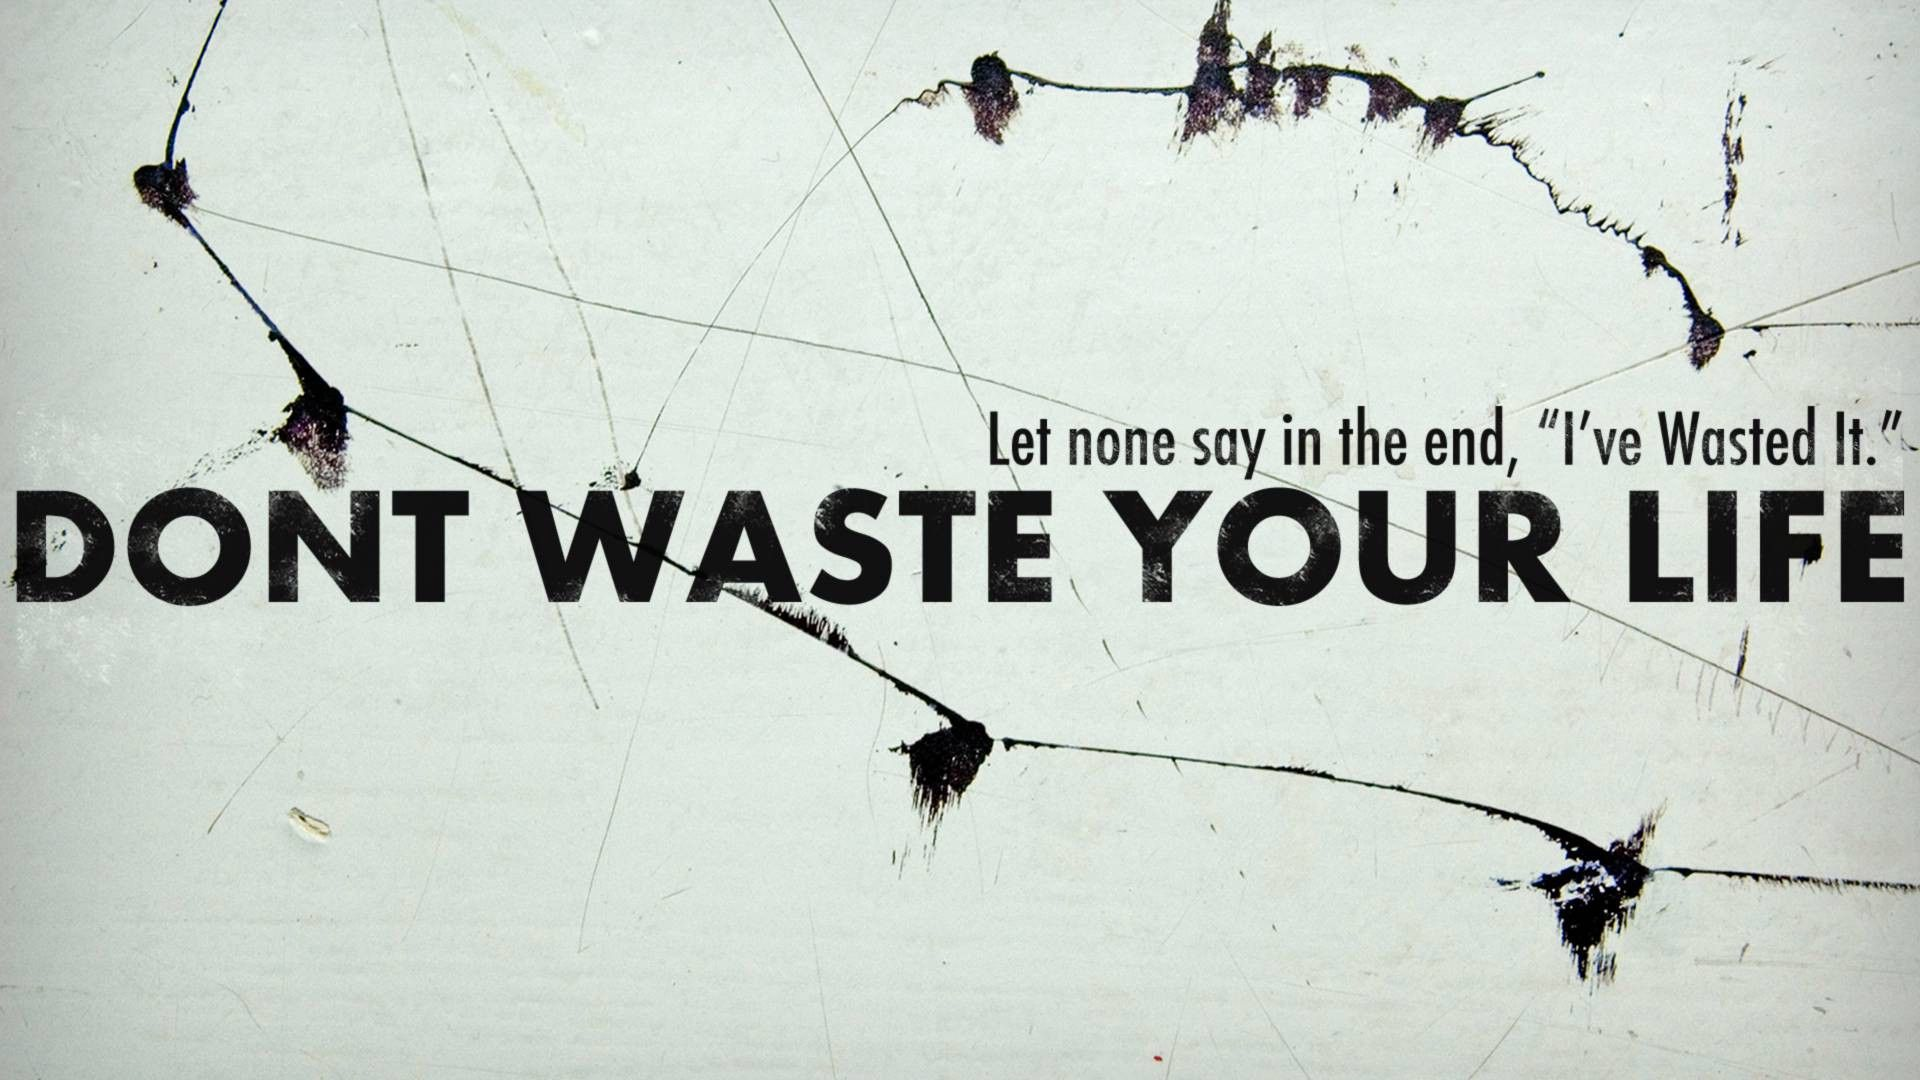 Hd wallpaper for whatsapp - Quotes Of Dont Waste Your Life Full 720p Hd Wallpaper Whatsapp